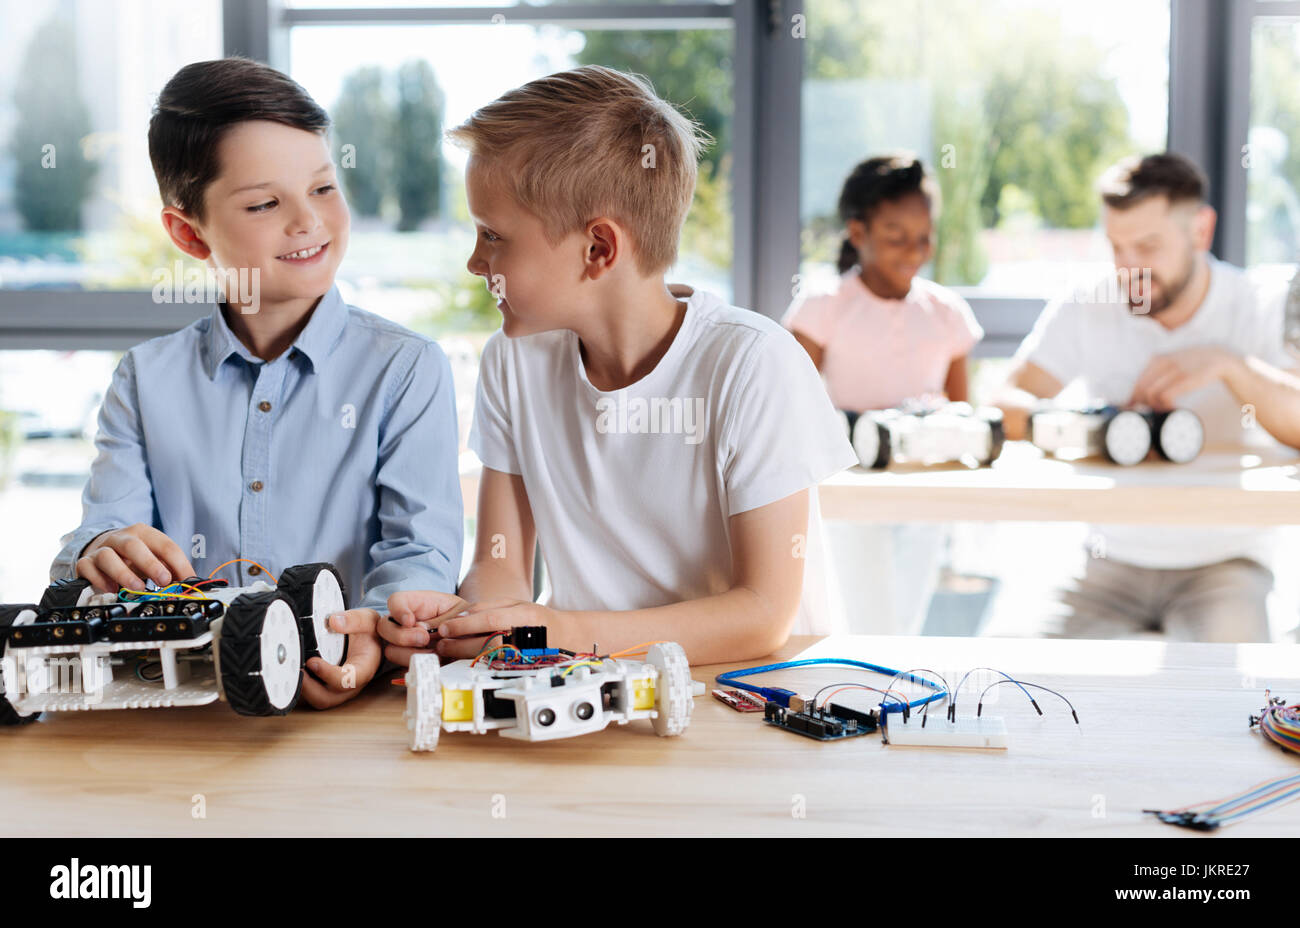 Two pre-teen students socializing during robotics class - Stock Image